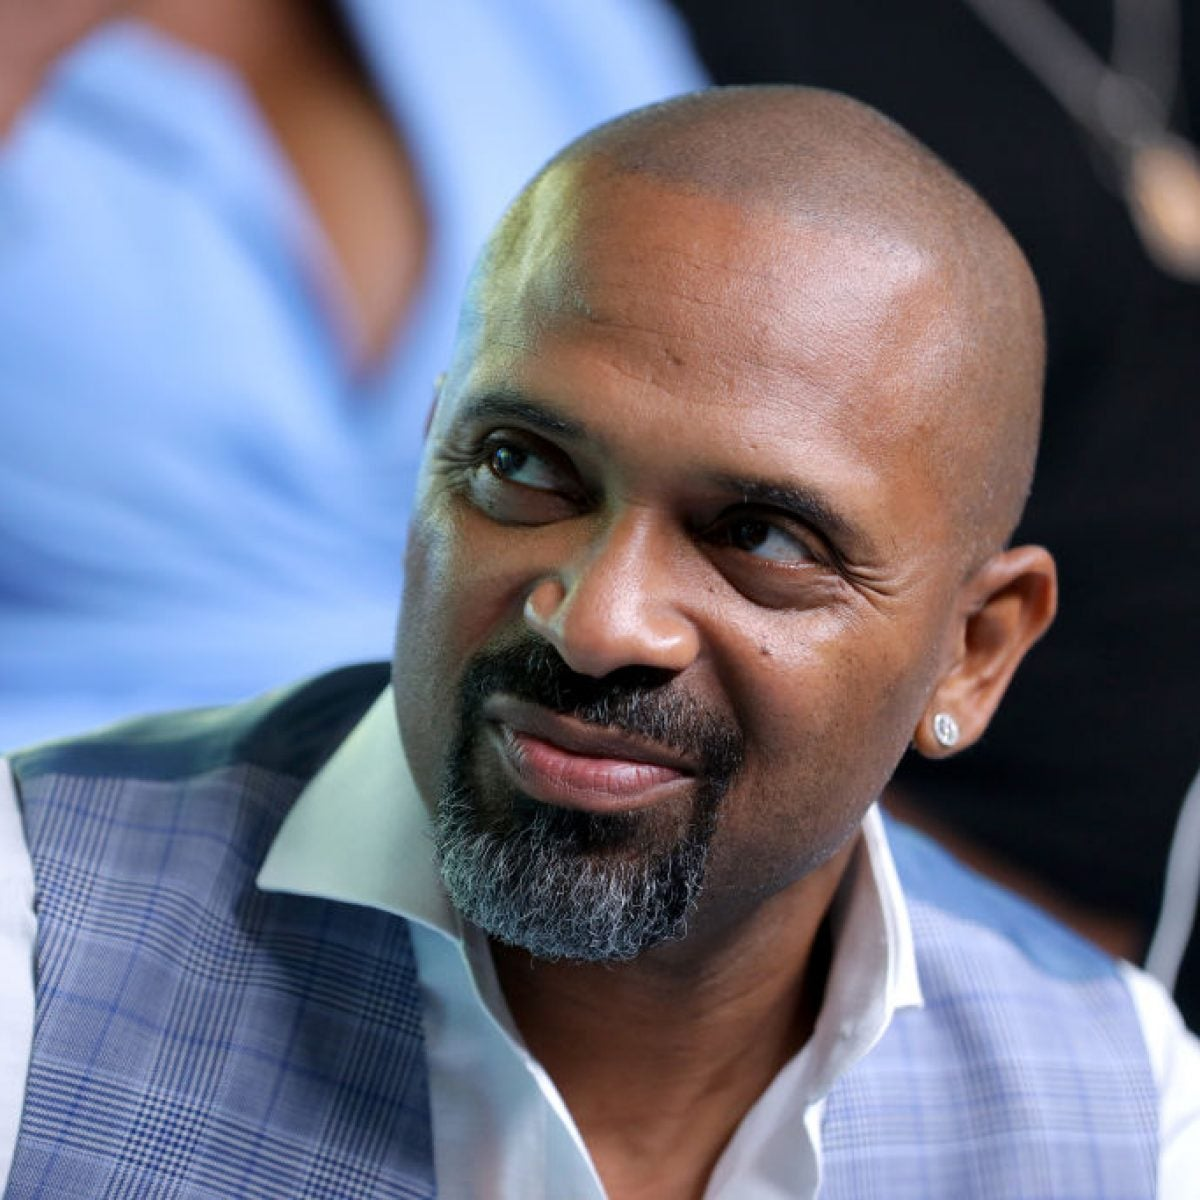 Mike Epps Mourns The Loss Of His Father Weeks After His Mother's Passing